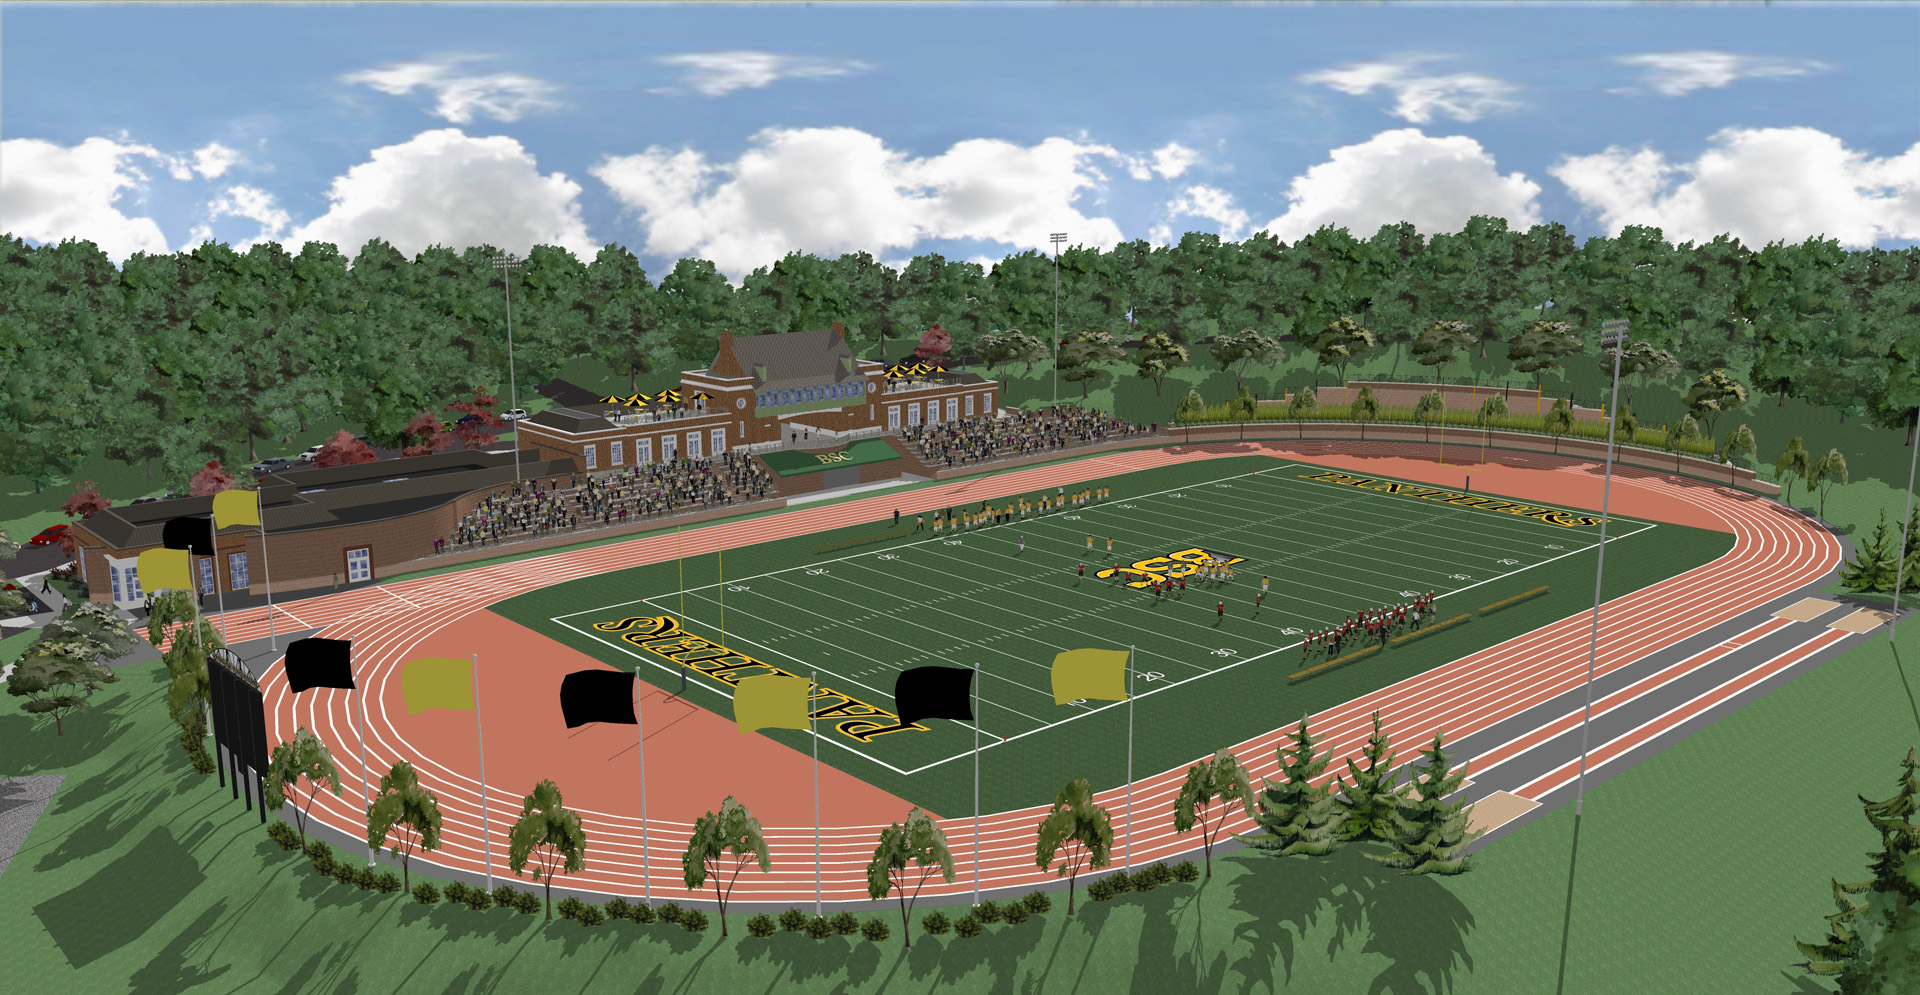 BSC Panther Stadium Rendering